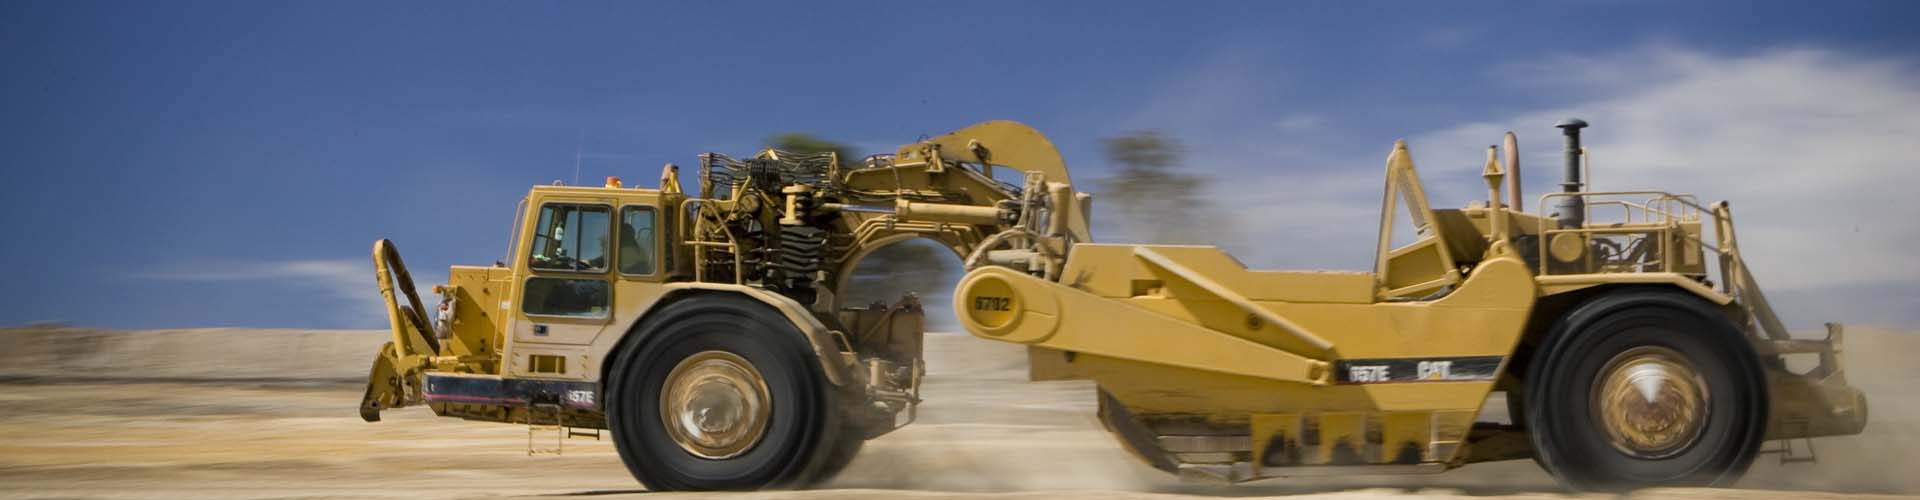 Earthmoving in the South West of Western Australia